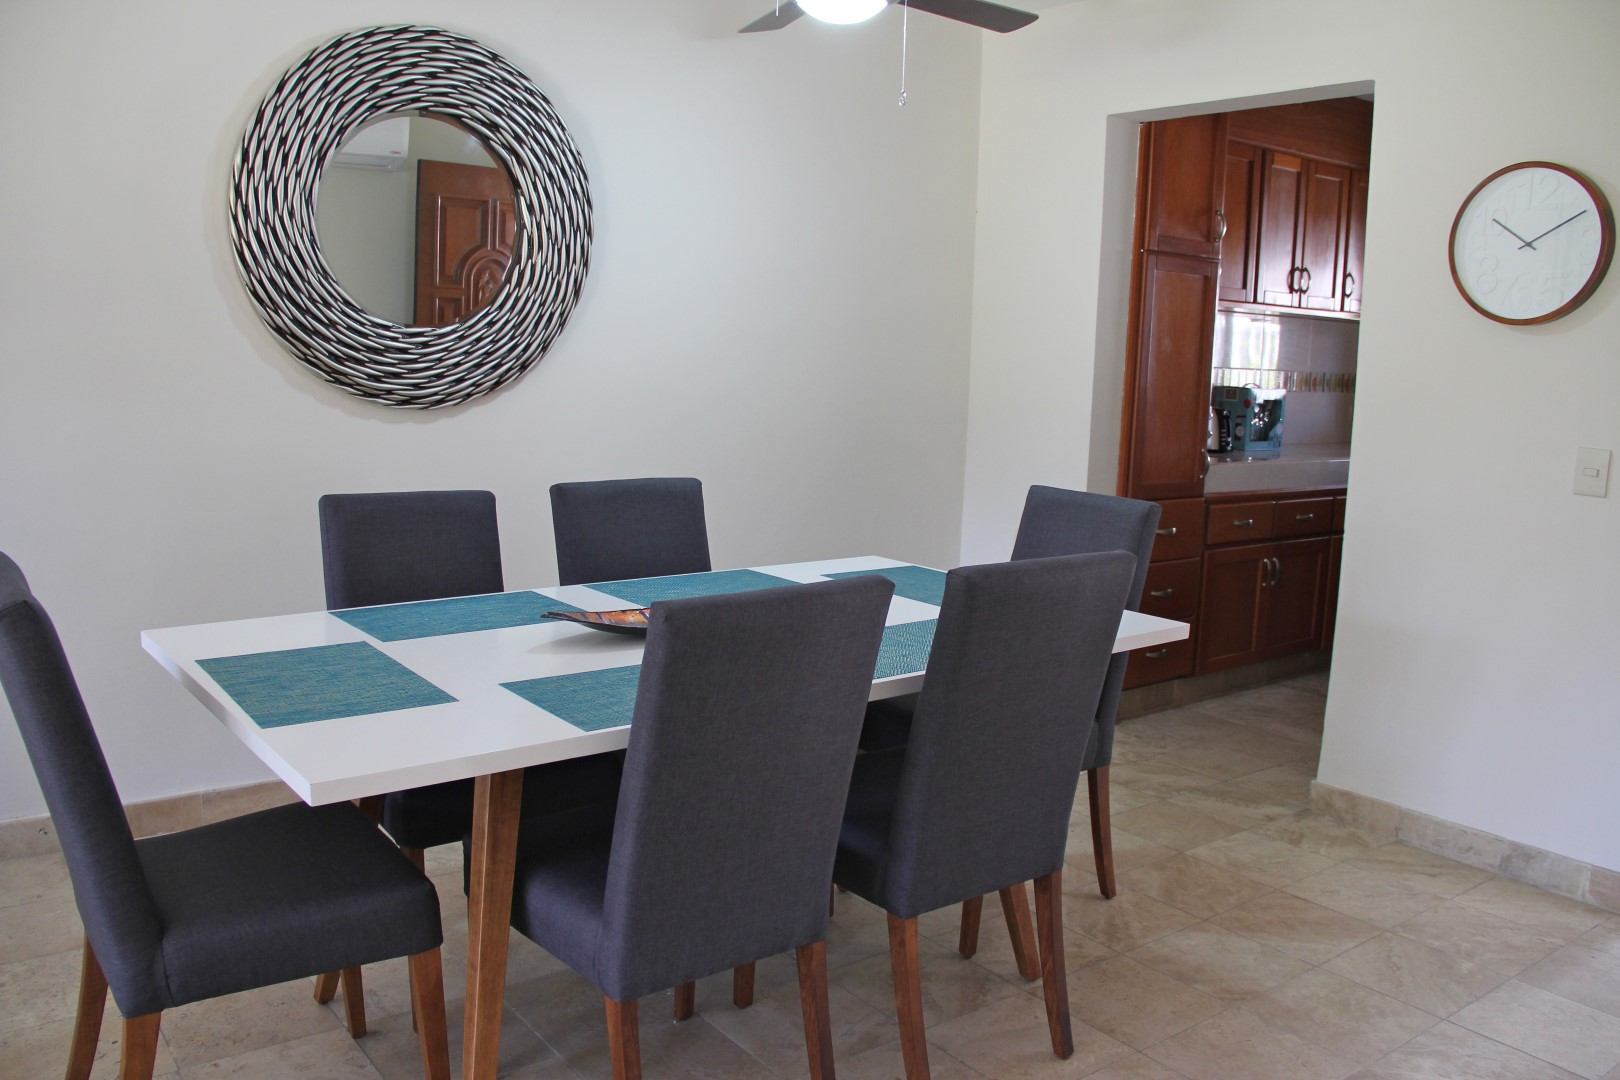 Dining area with kitchen access